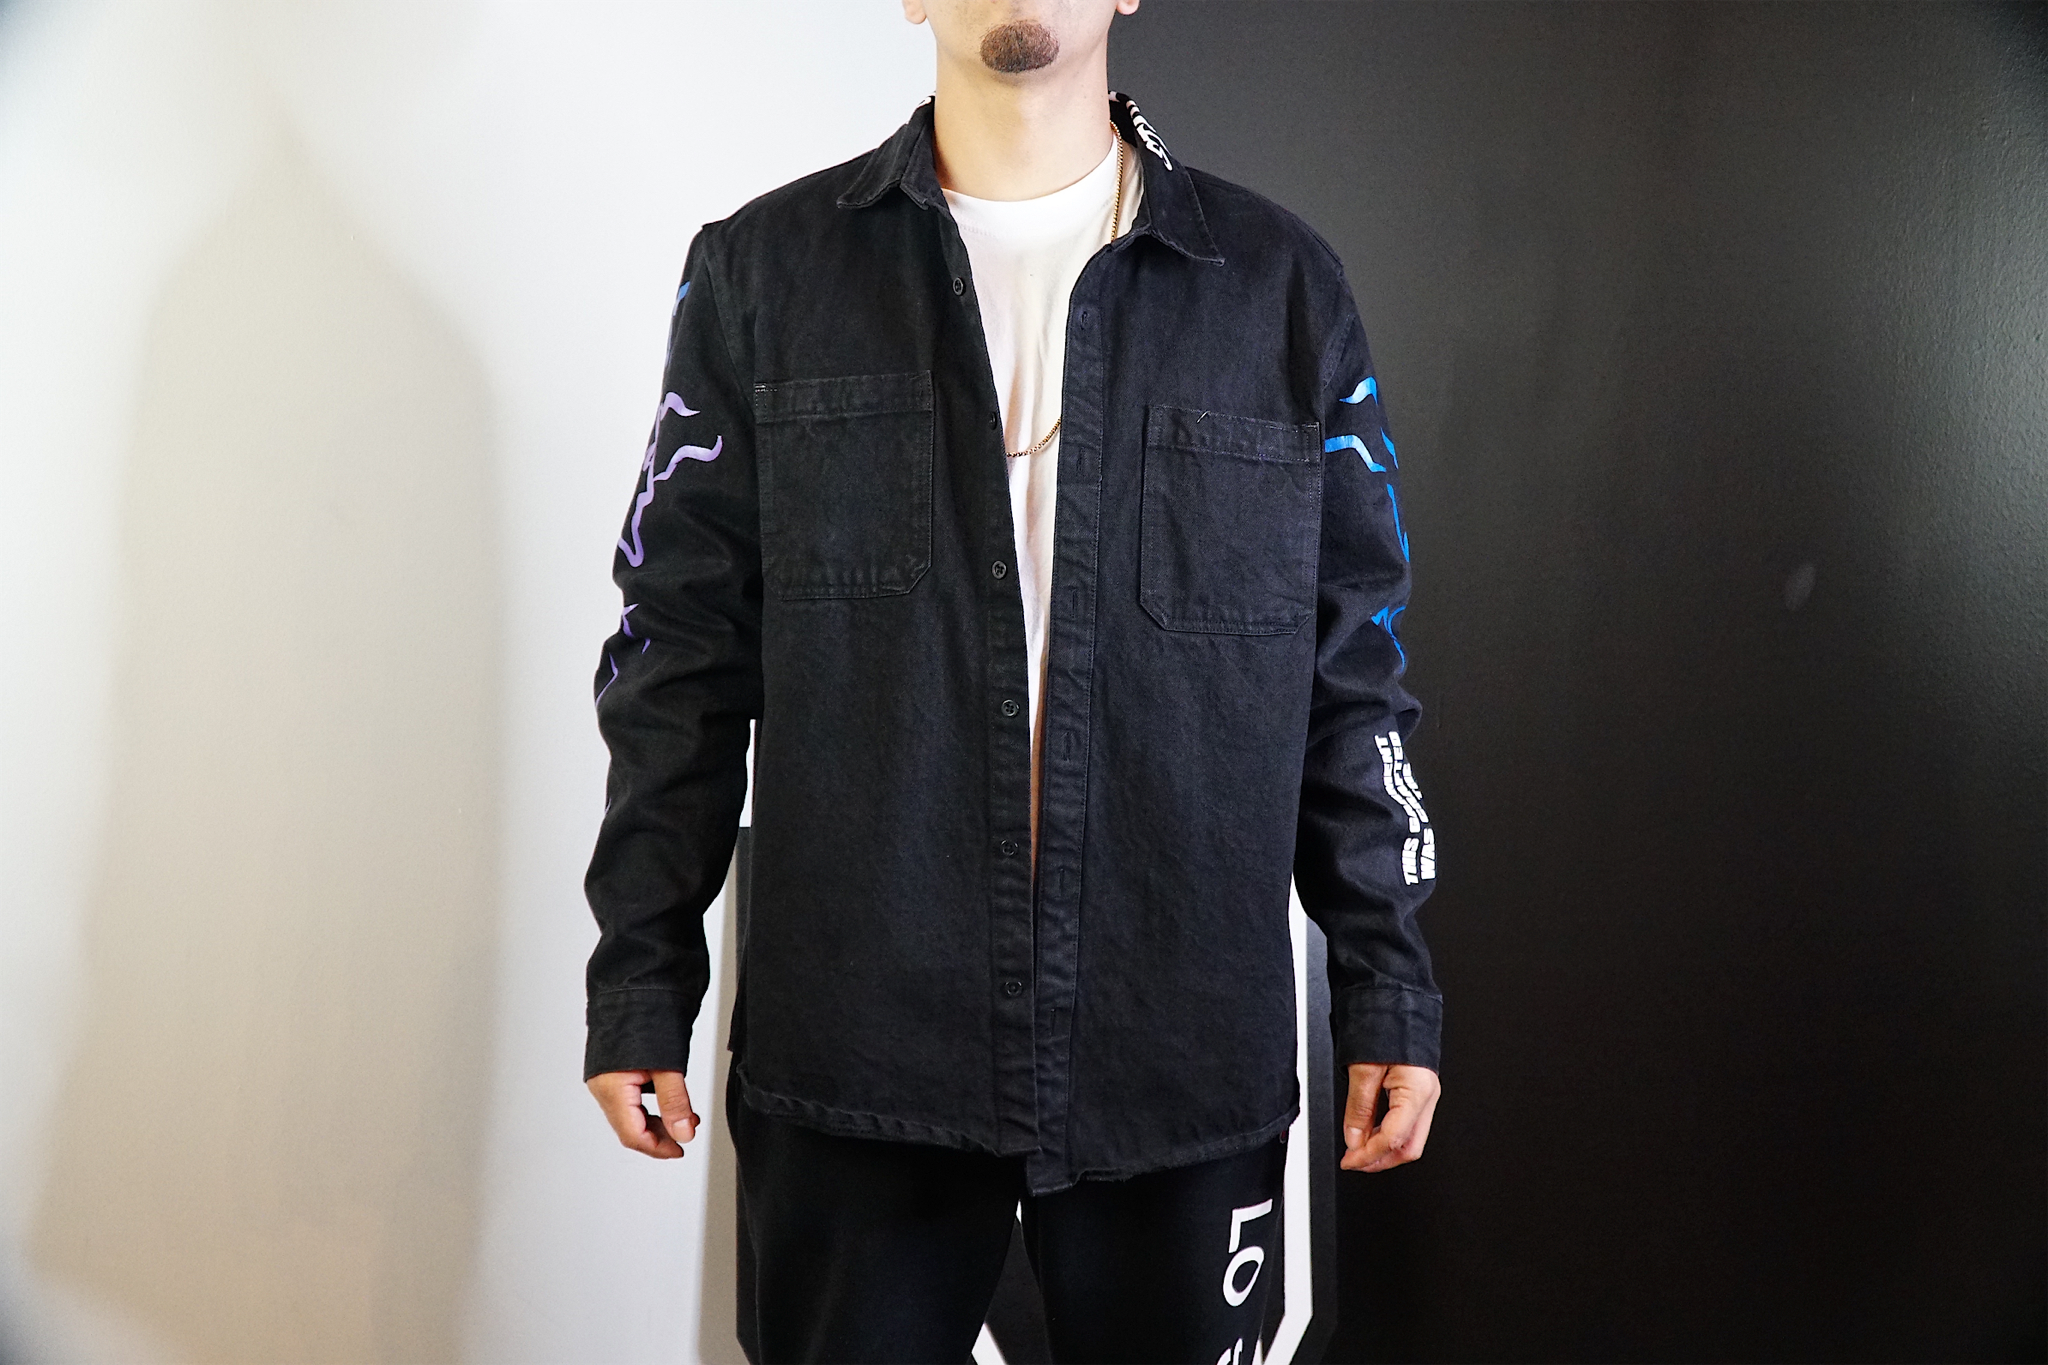 magikusa - STAY DANGEROUS DENIM SHELL - NOIR/ROYAL - DENIM SHELL